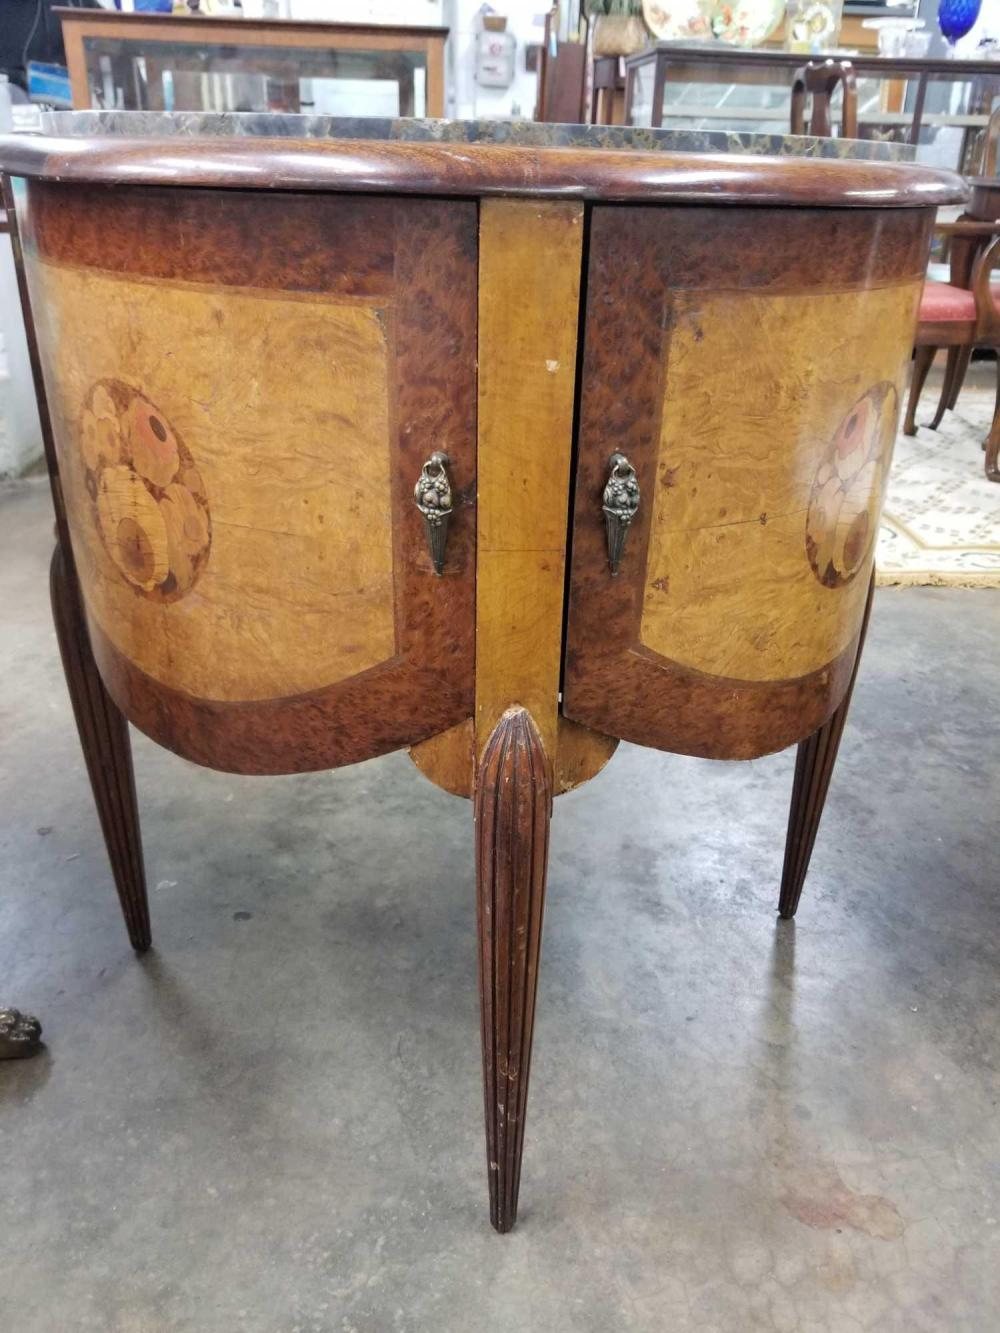 ANTIQUE FRENCWALNUT DEMILUNE TABLE W/ MARBLE TOP